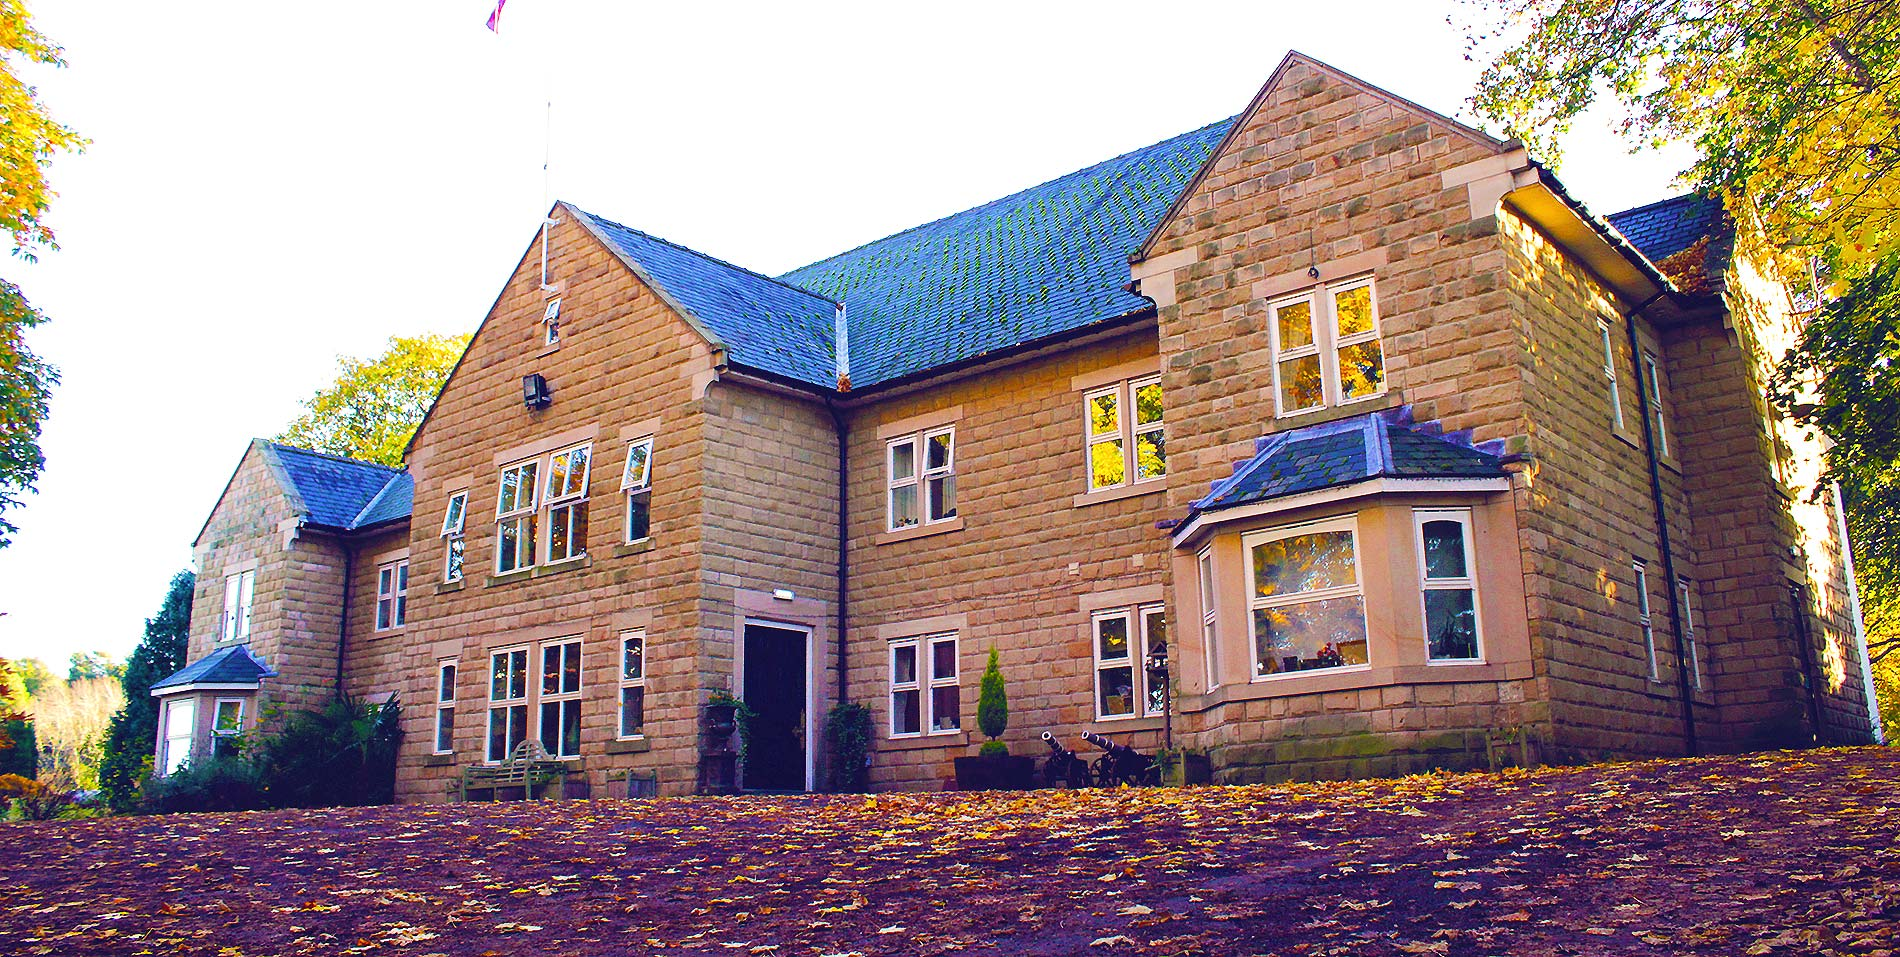 Wentworth Grange Nursing Home in Northumberland